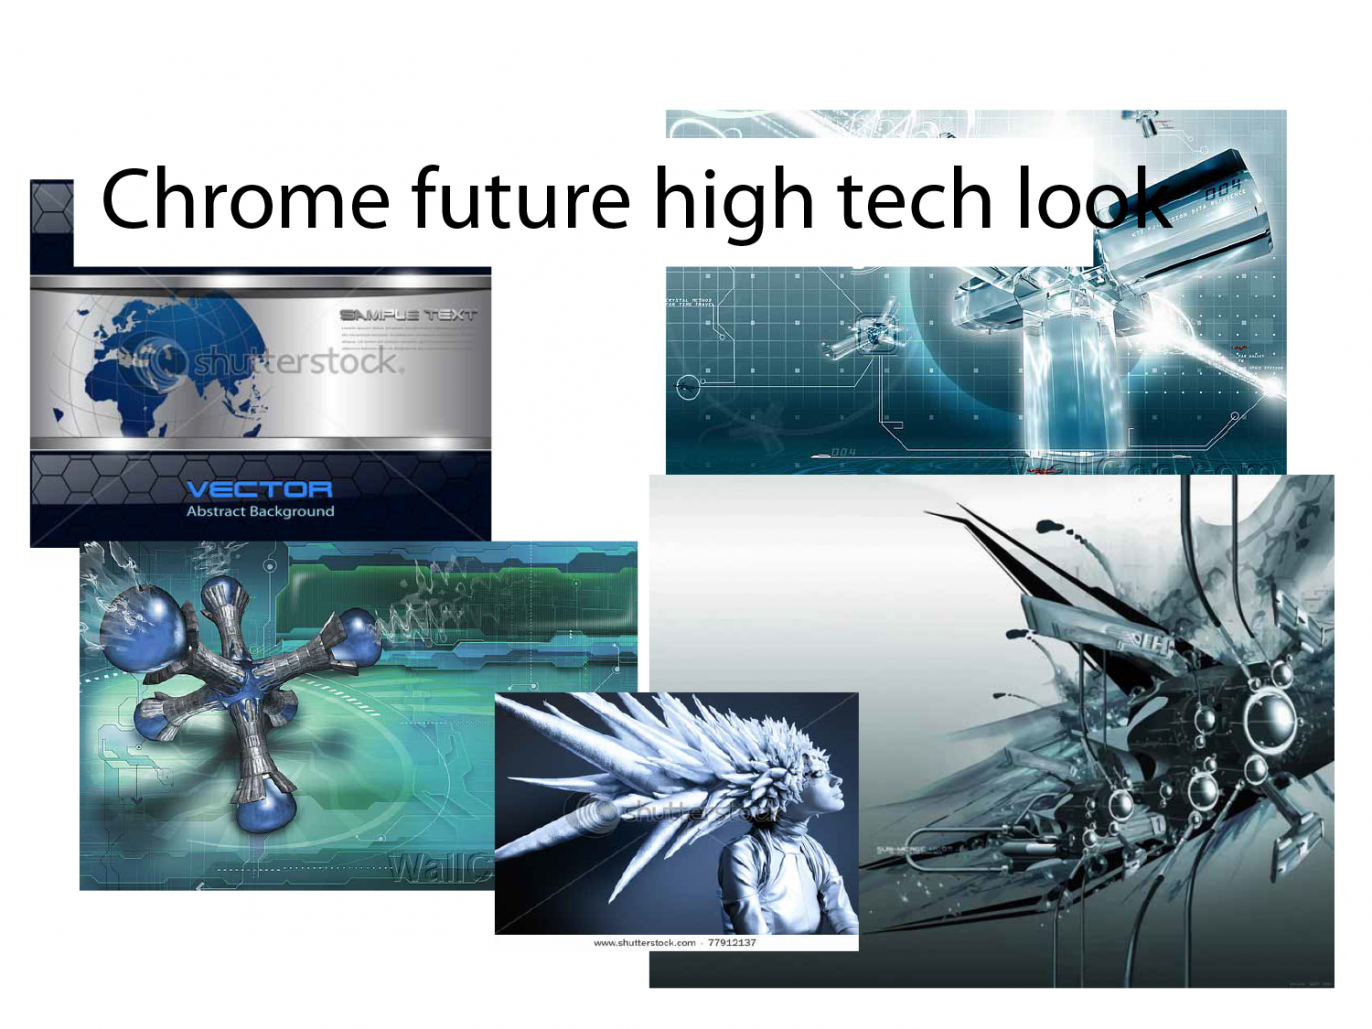 image showing chrome high tech looking images